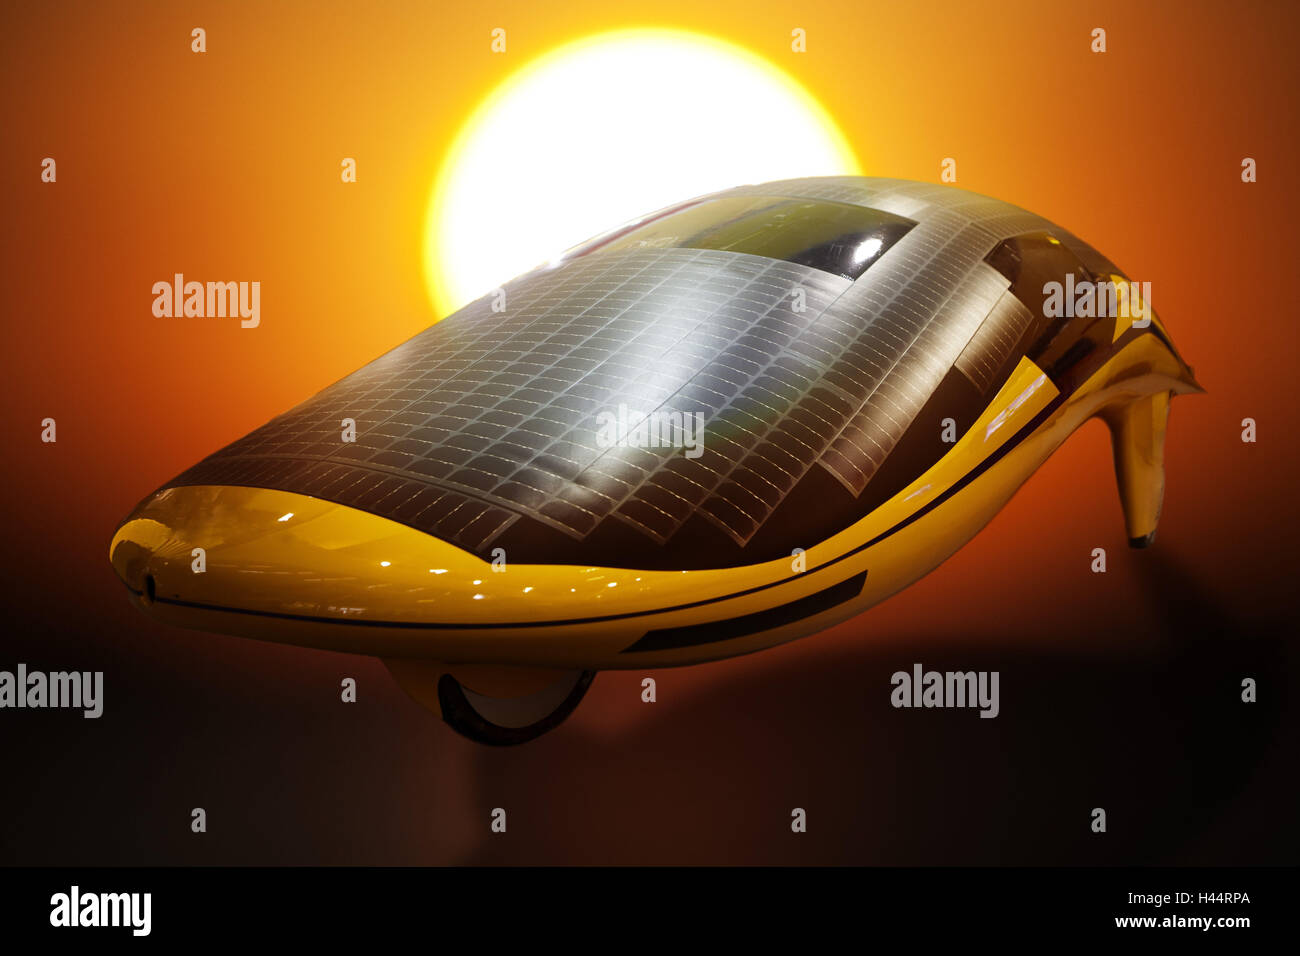 Electromobile with solar collectors, futuristic, - Stock Image